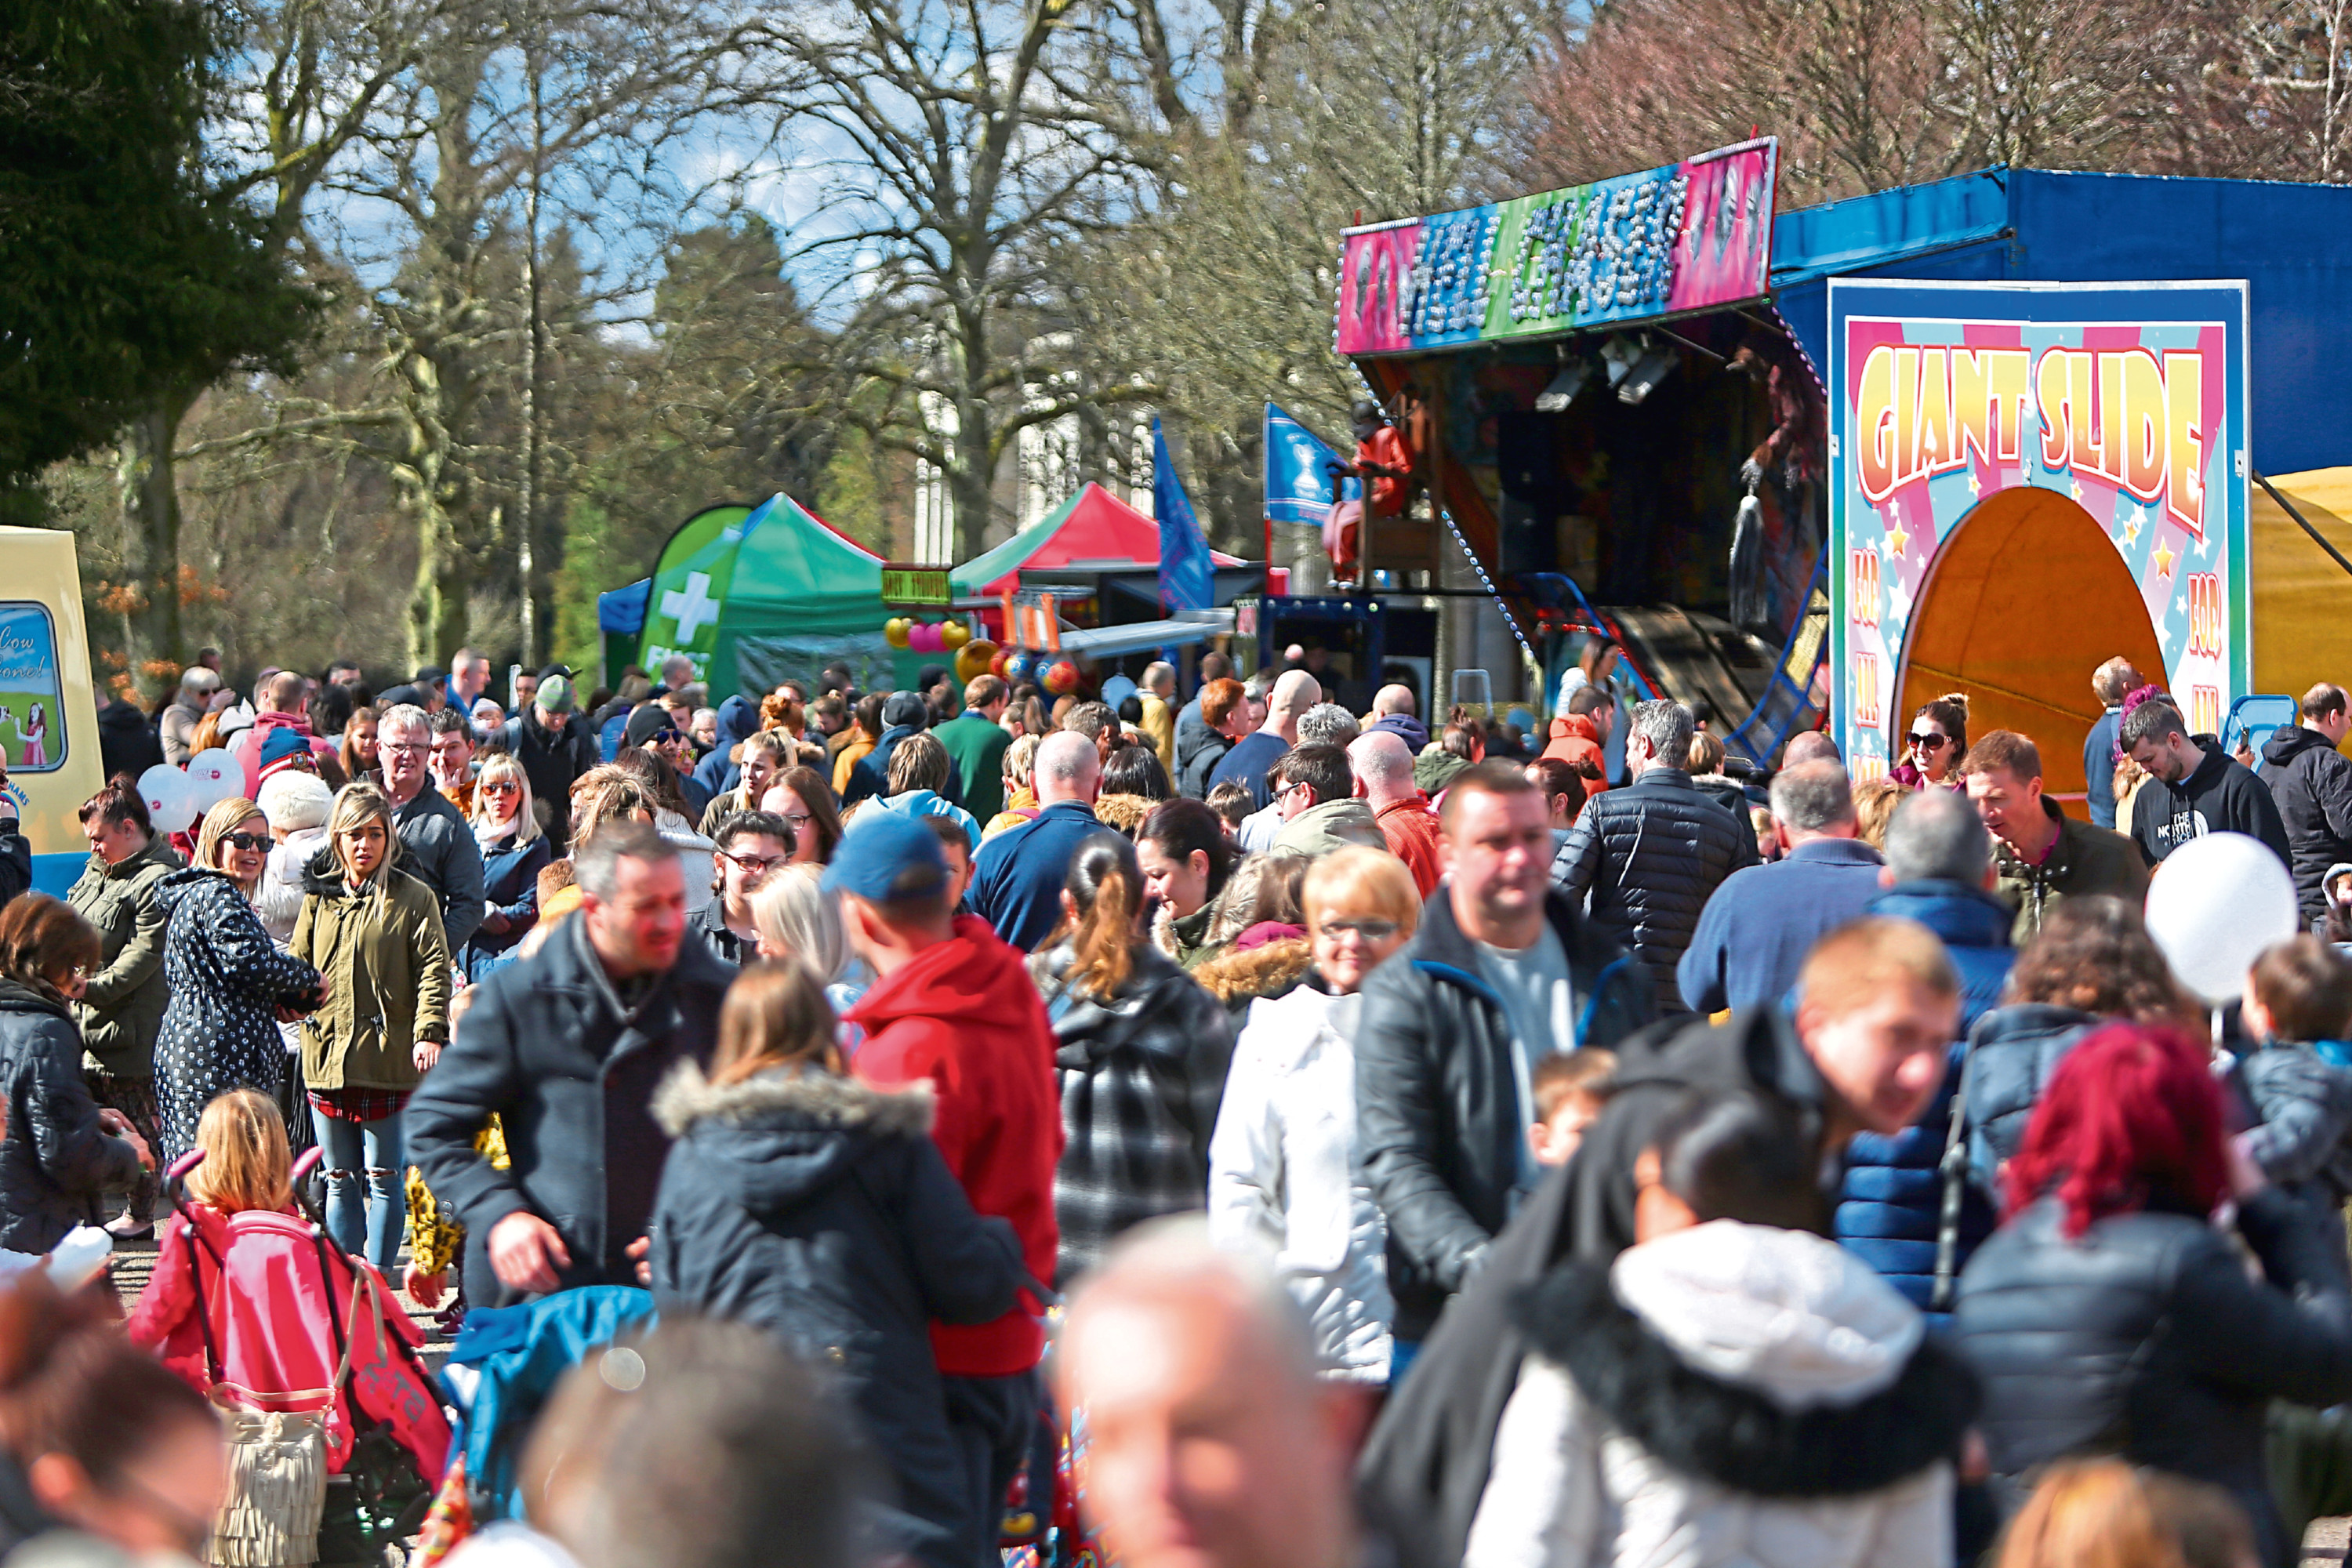 Courier/Tele News. Dundee story. CR0000249 CR0000343 Easter Fun Day w with fun activities for all the family. We'll have the Wave FM Radio Roadshow with a host of live music, games and an easter egg hunt. The ParkLives Dundee team will be providing Free family Easter themed activities. Pic shows;large crowds enjoying easter Sunday at Camperdown Park. Sunday, 1st April, 2018.